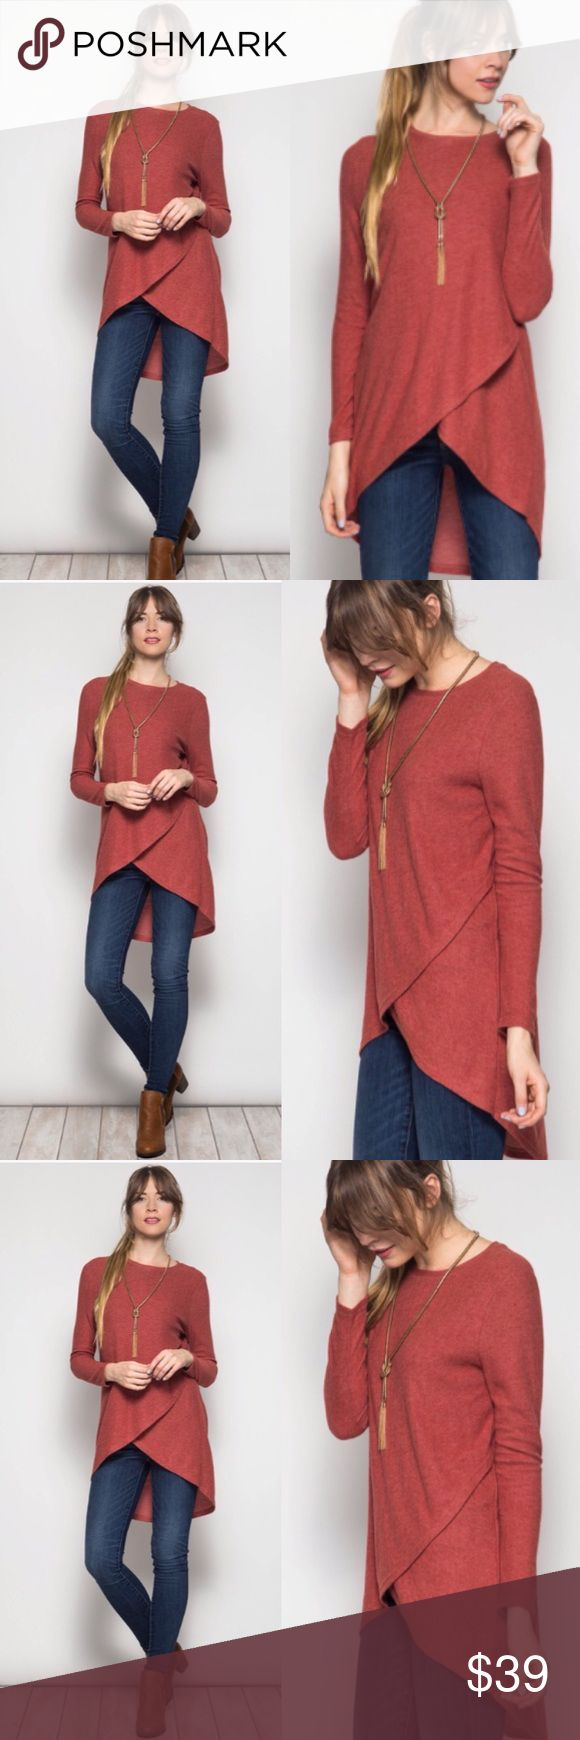 ❣️LAST❣️Beautiful Rust Color Tulip Cut Tunic Top Super chic and perfect color for the season! Brand new. Sizes S M L and runs true to women's sizing. Tops Tunics